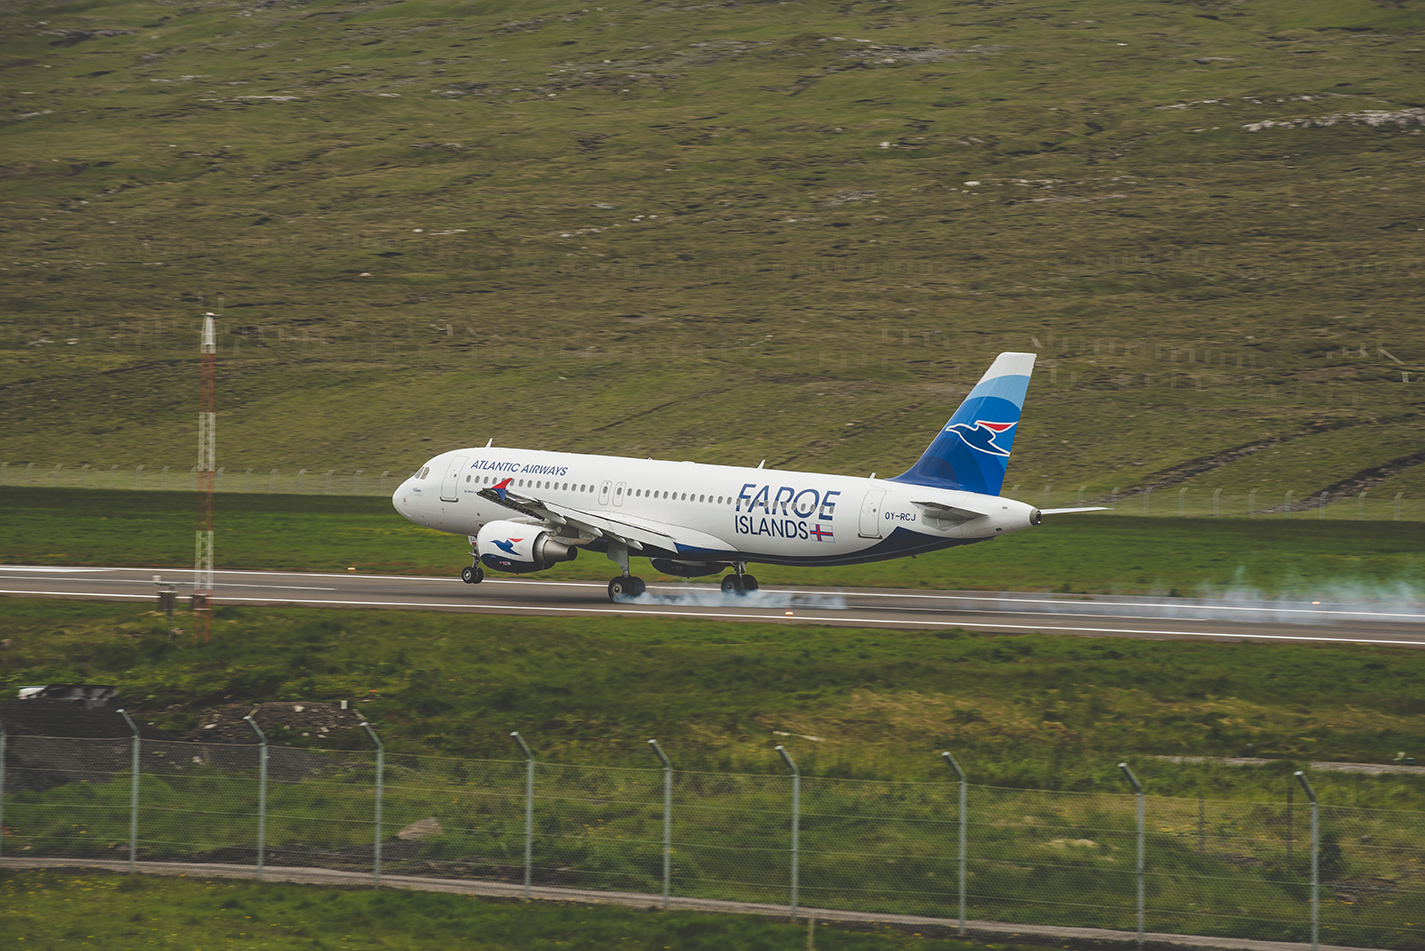 FaroeIslands_Day1_22-6-17_TAL-15.jpg